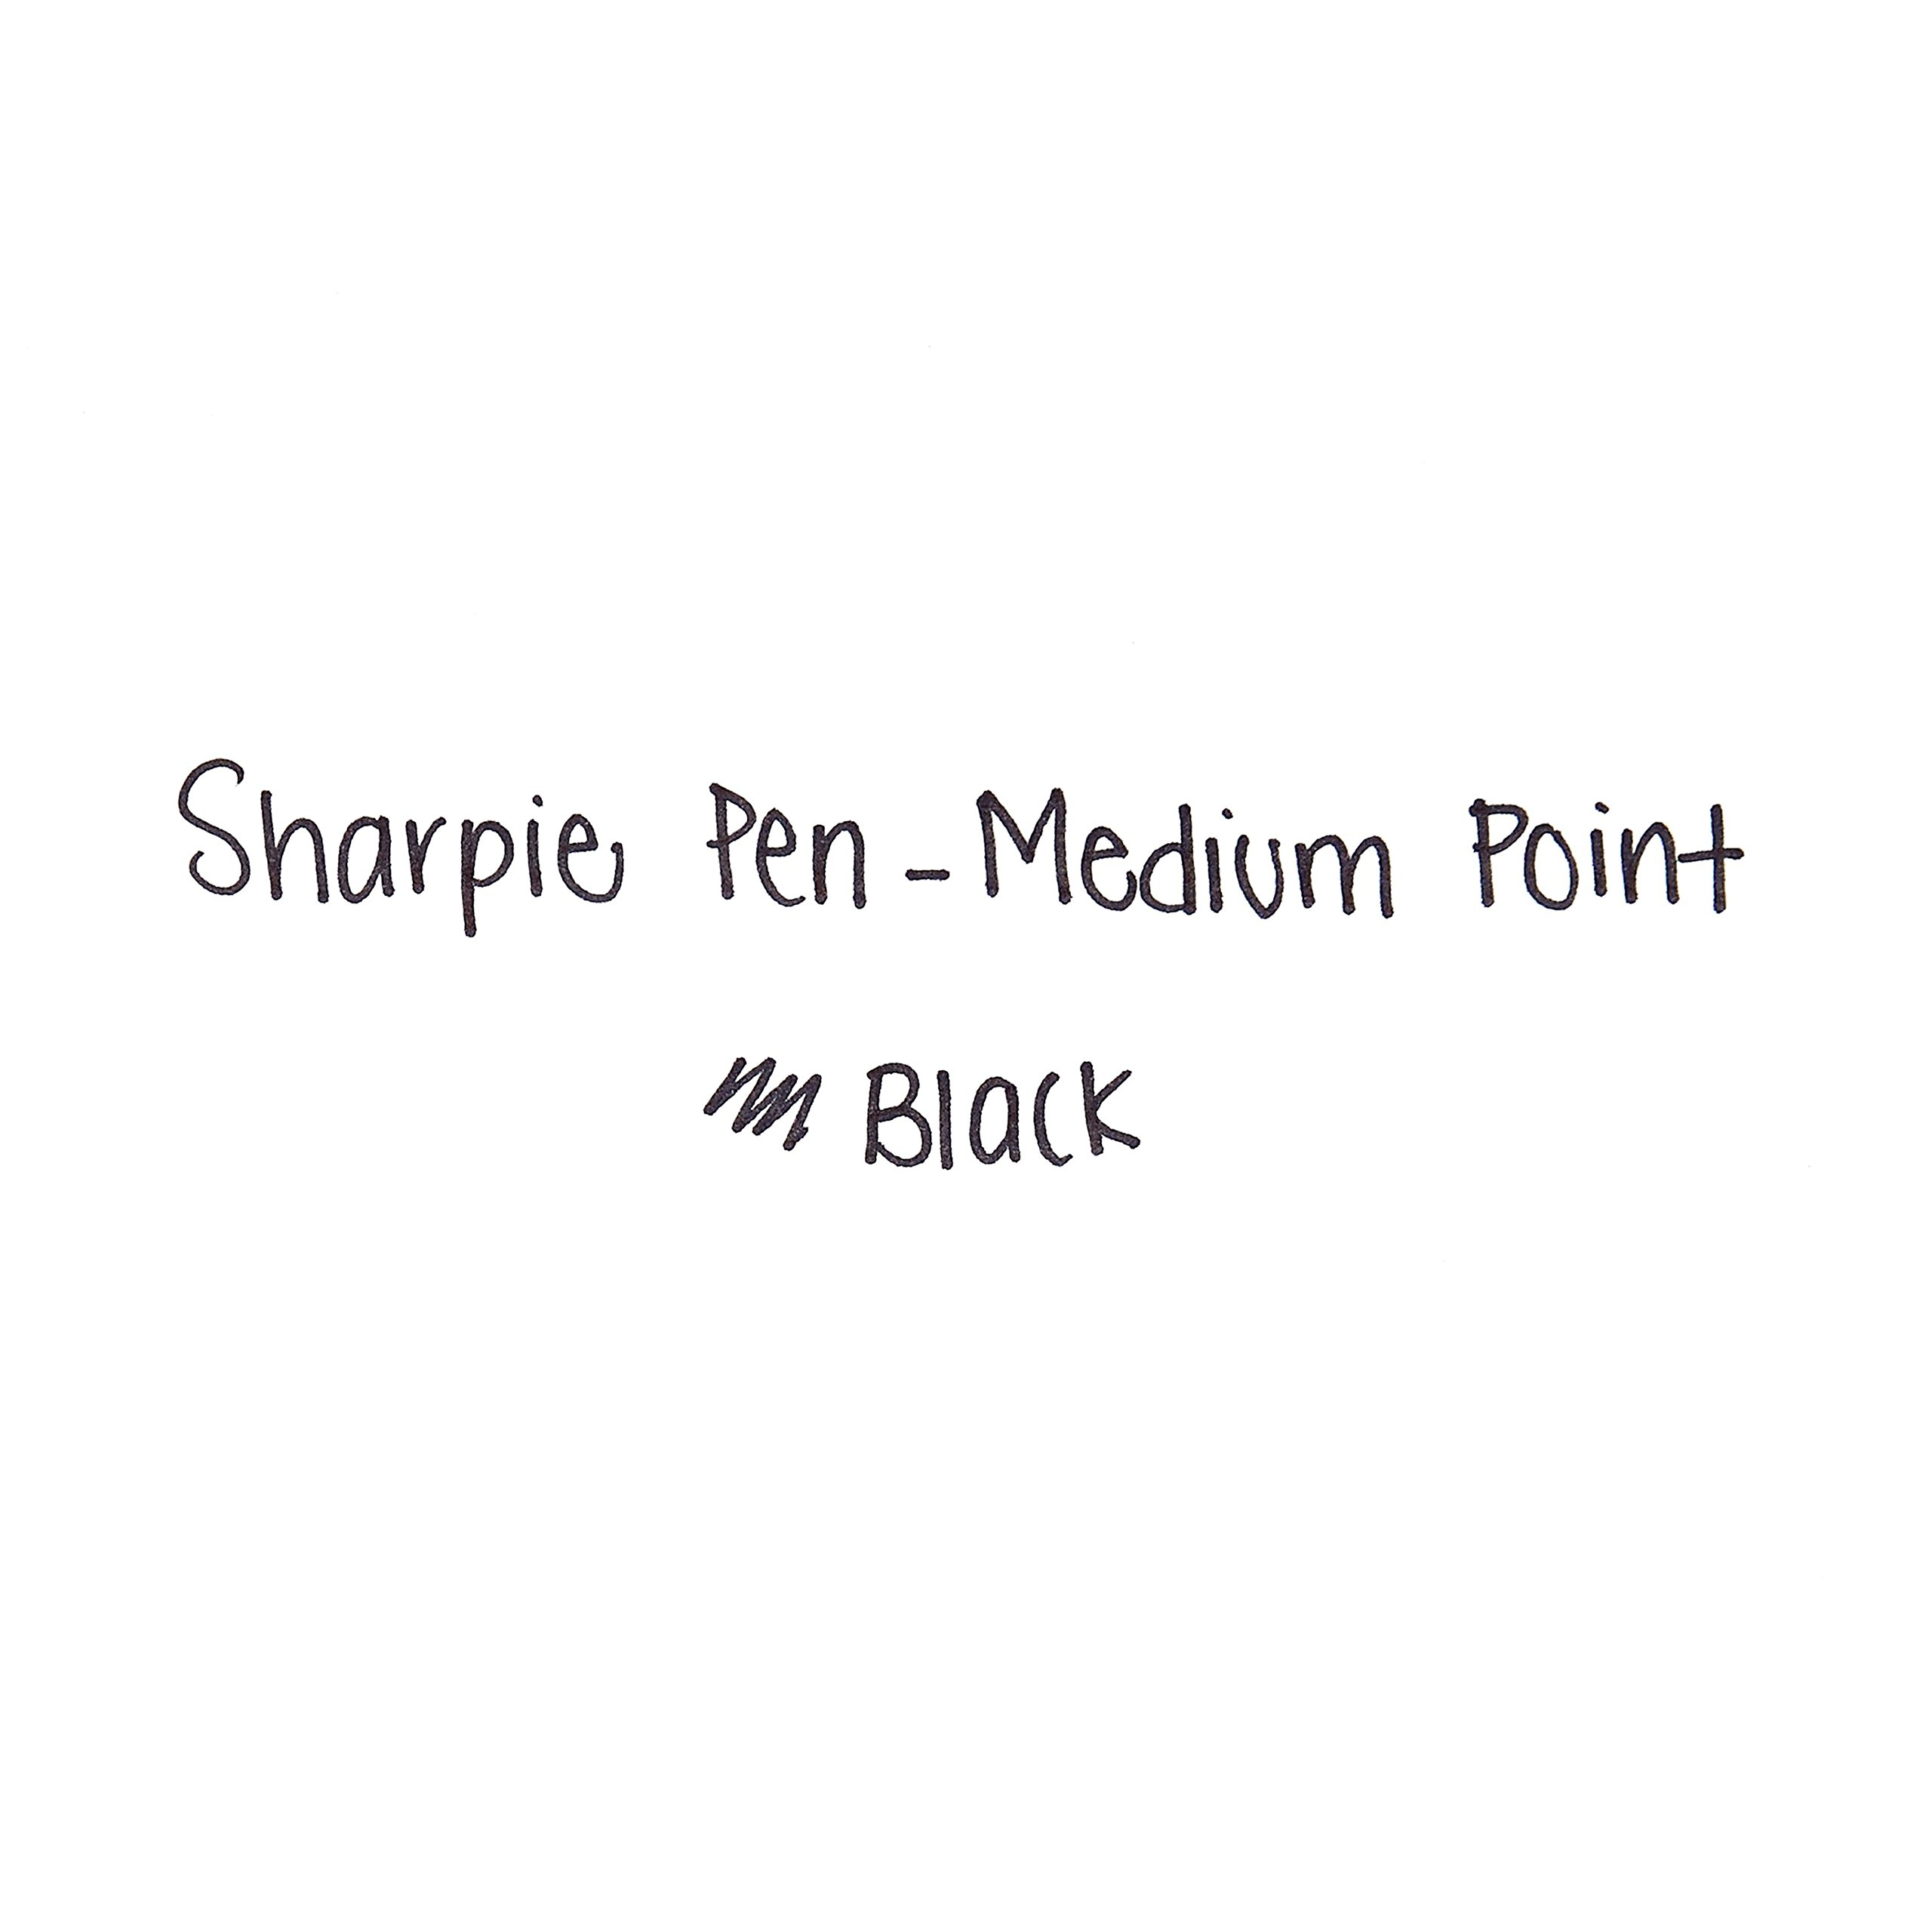 Sharpie Pens, Medium Point, Black, Box of 12 by Sharpie (Image #1)